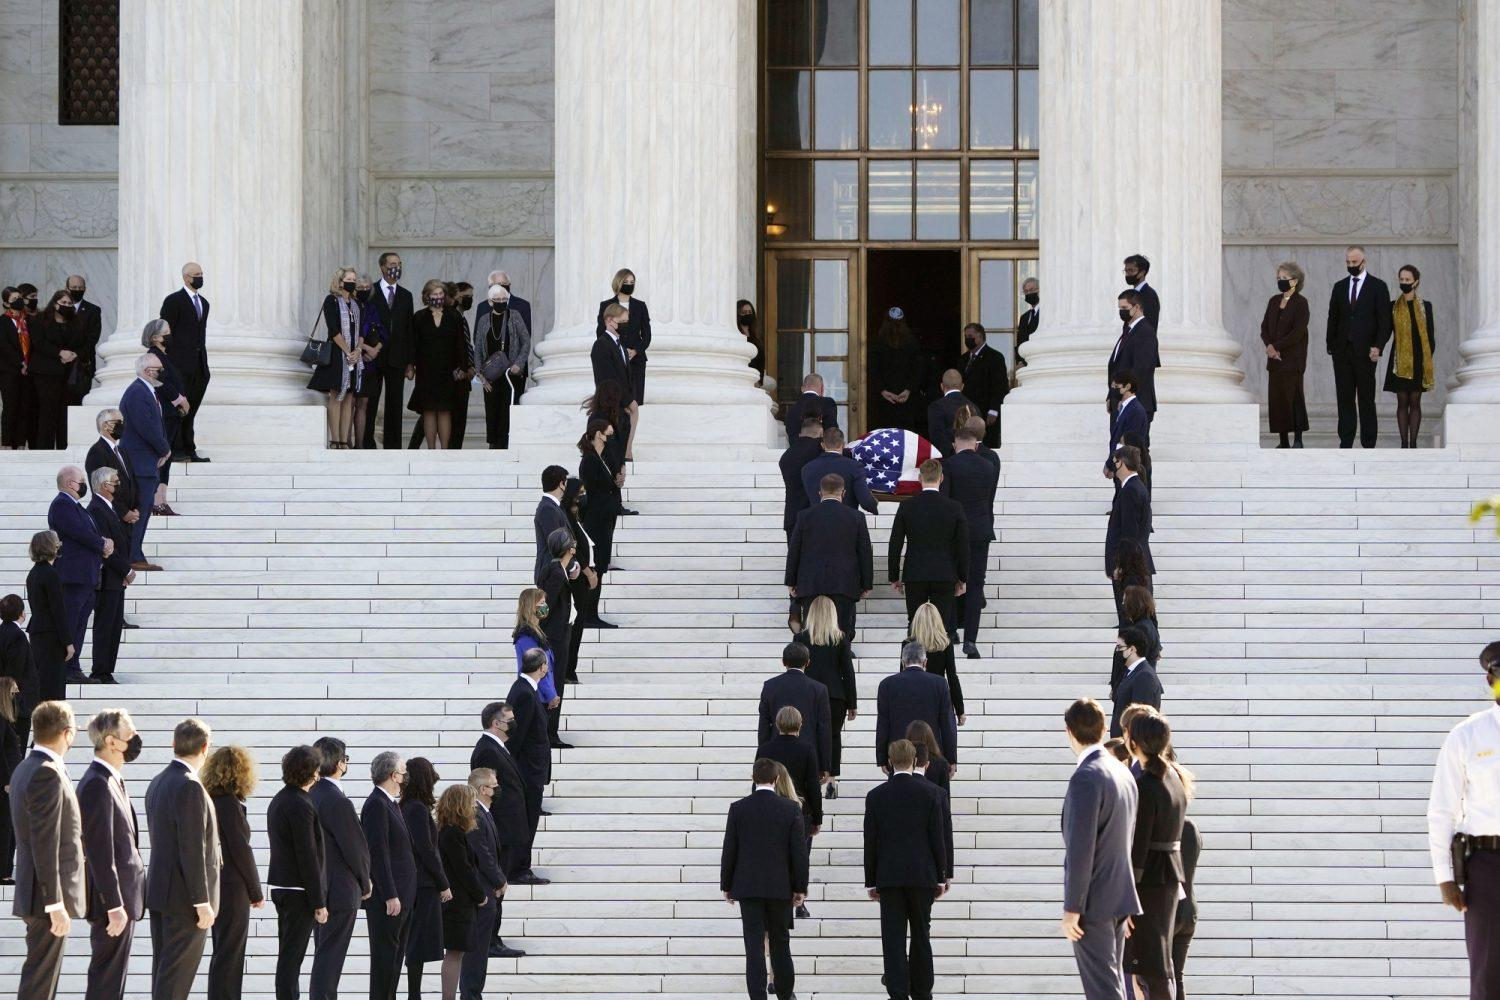 Photo of the flag-draped casket of Justice Ruth Bader Ginsburg arriving at the steps of the Supreme Court building in Washington D.C., on Wednesday, Sept. 23, 2020.